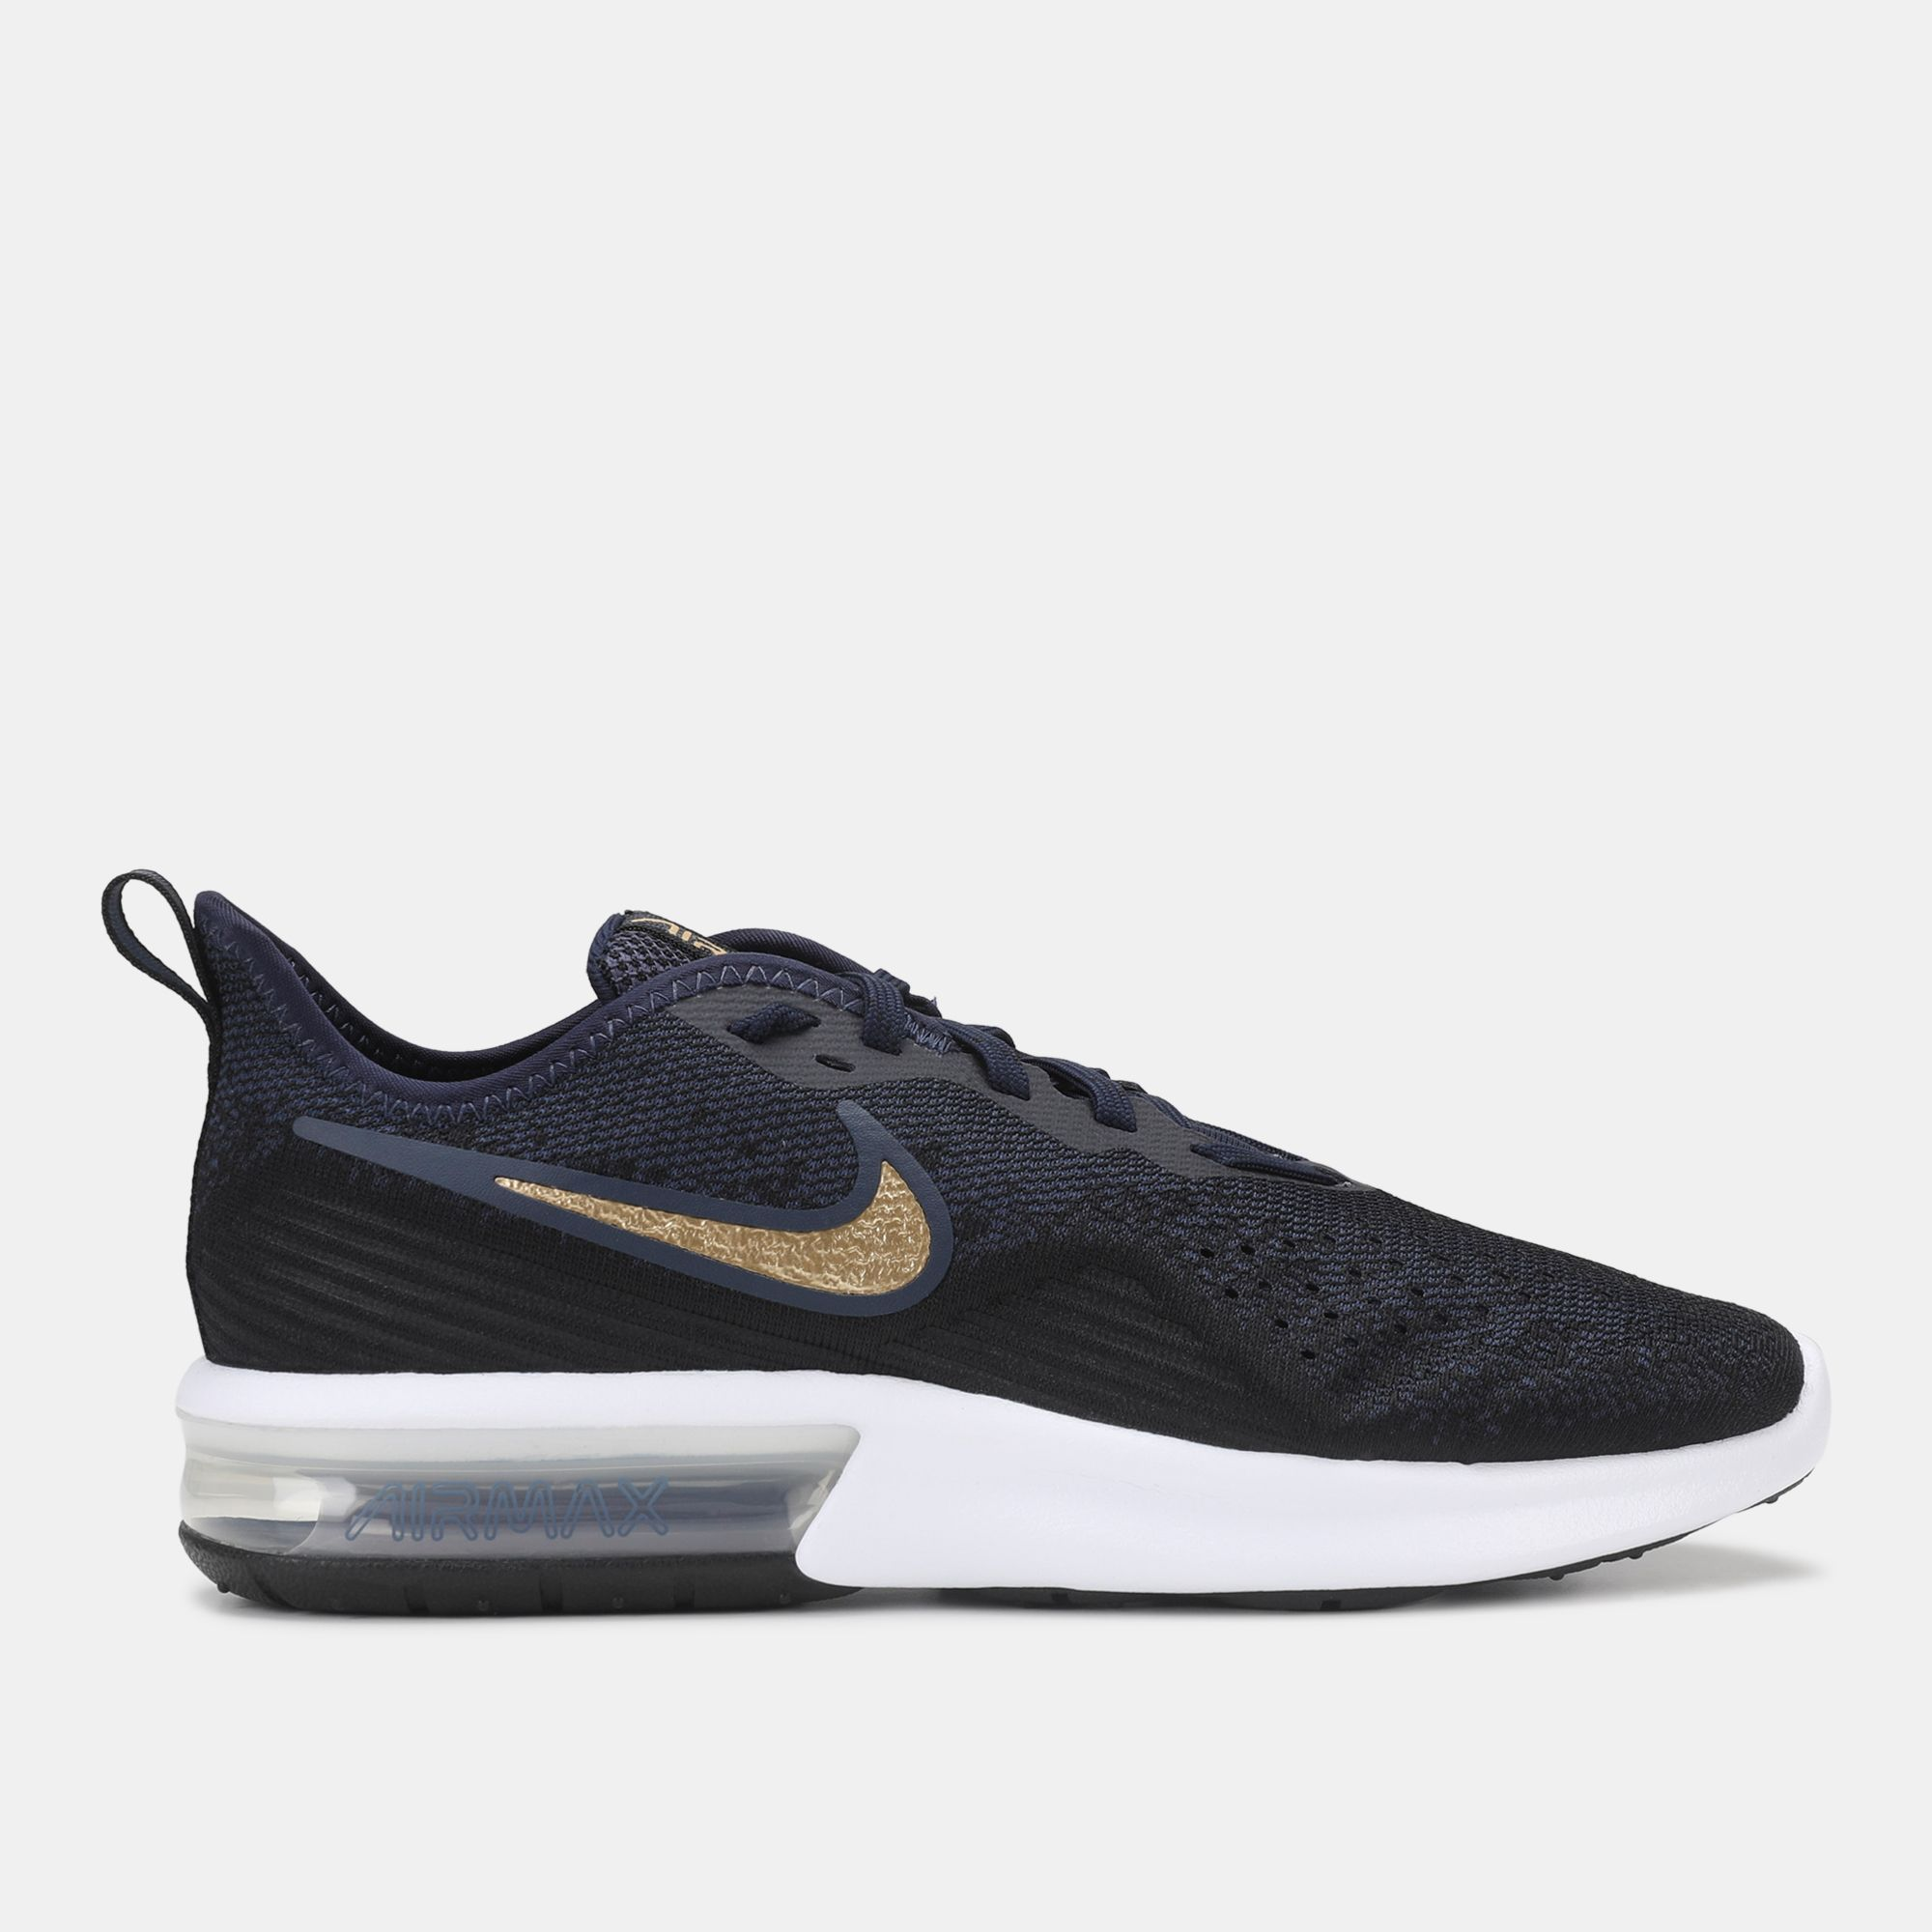 274c2f04f326 Nike Air Max Sequent 4 Shoe